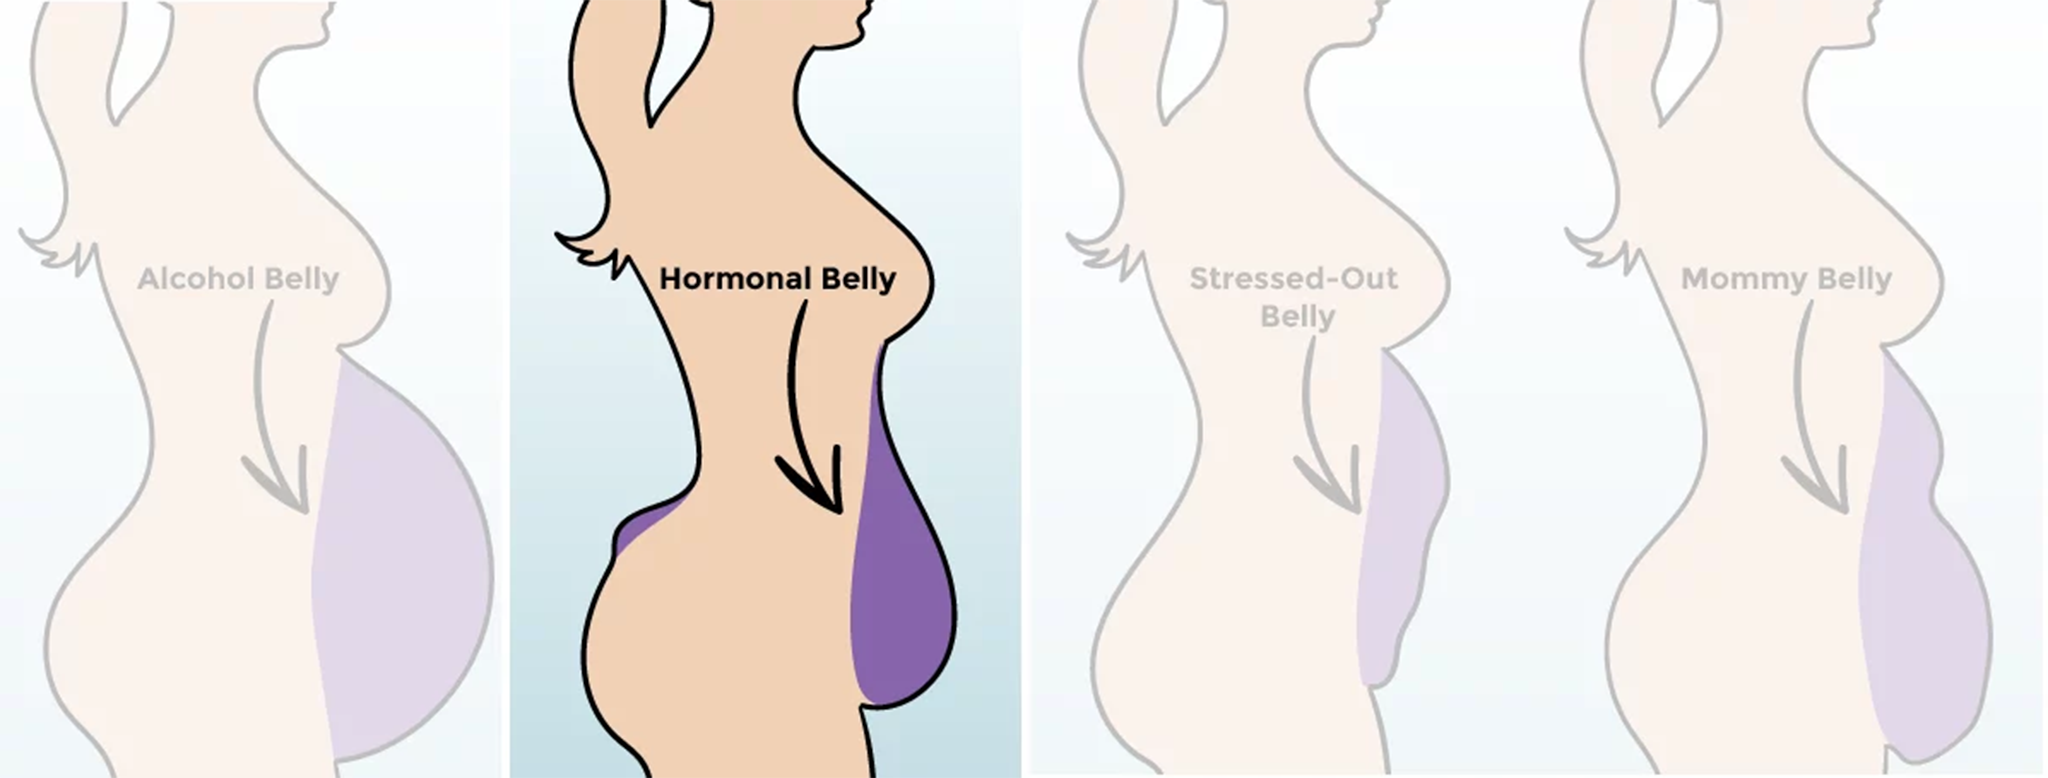 How to Tackle Every Kind of Tummy Trouble How to Tackle Every Kind of Tummy Trouble new picture